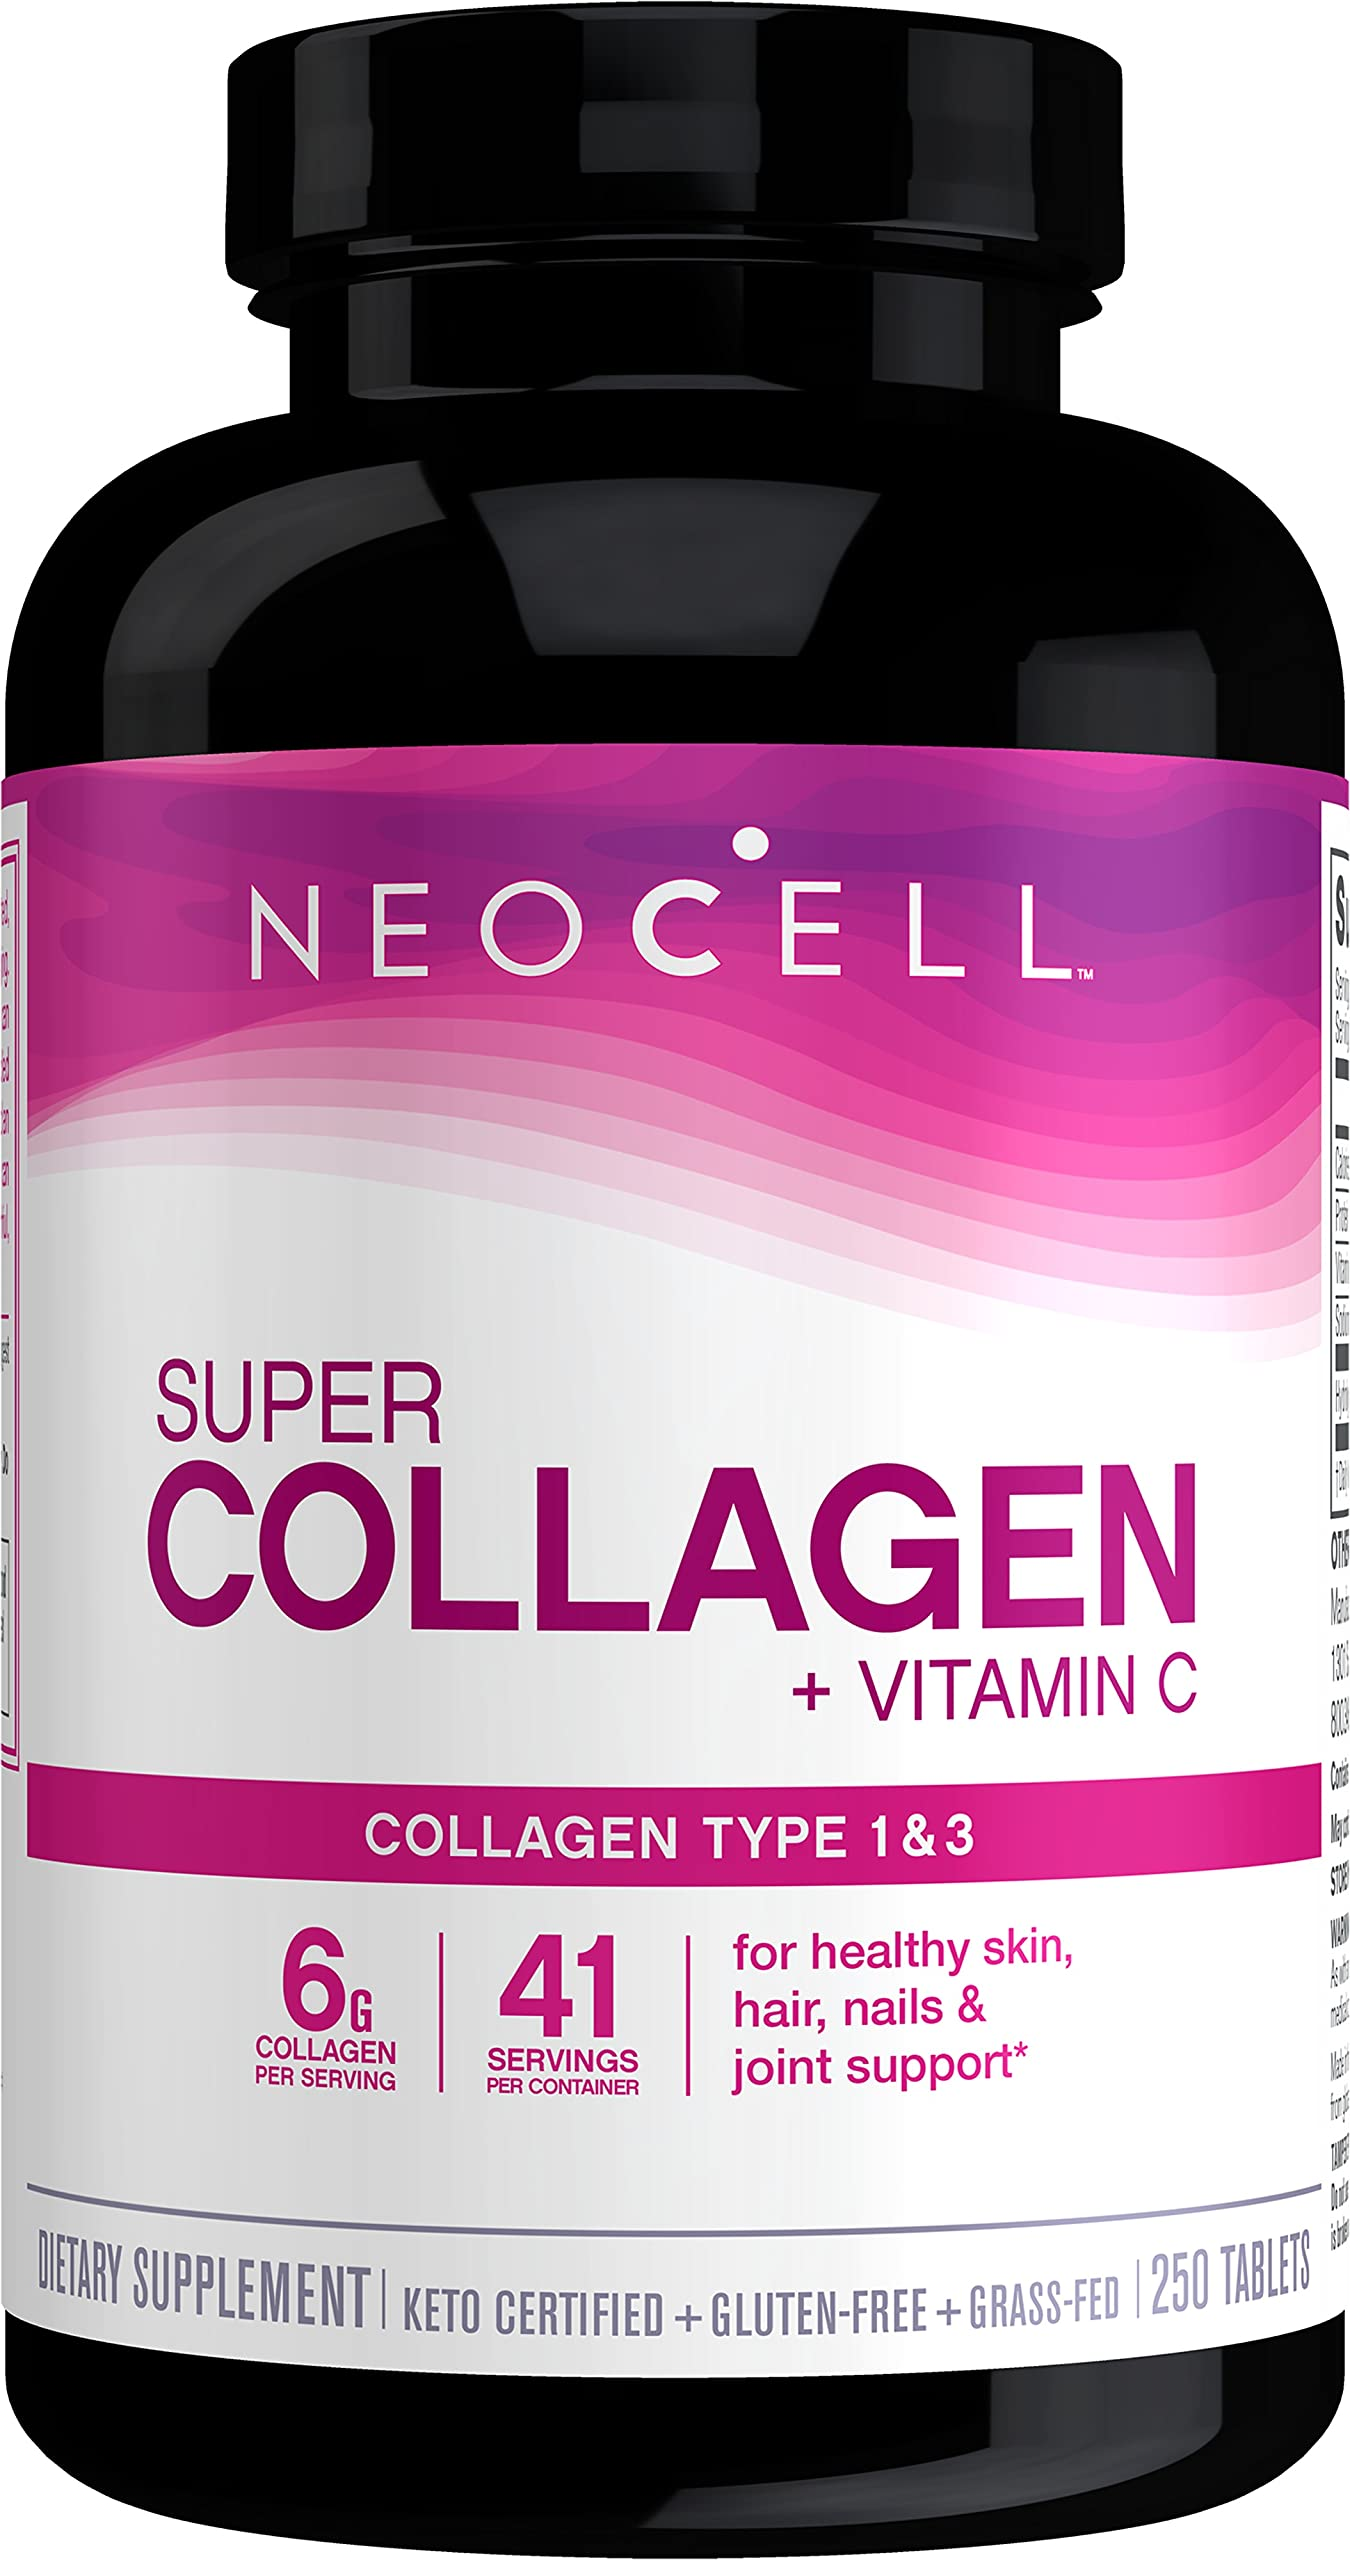 NeoCell Super Collagen with Vitamin C, 250 Collagen Pills, #1 Collagen Tablet Brand, Non-GMO, Grass Fed, Gluten Free, Collagen Peptides Types 1 & 3 for Hair, Skin, Nails & Joints (Packaging May Vary)